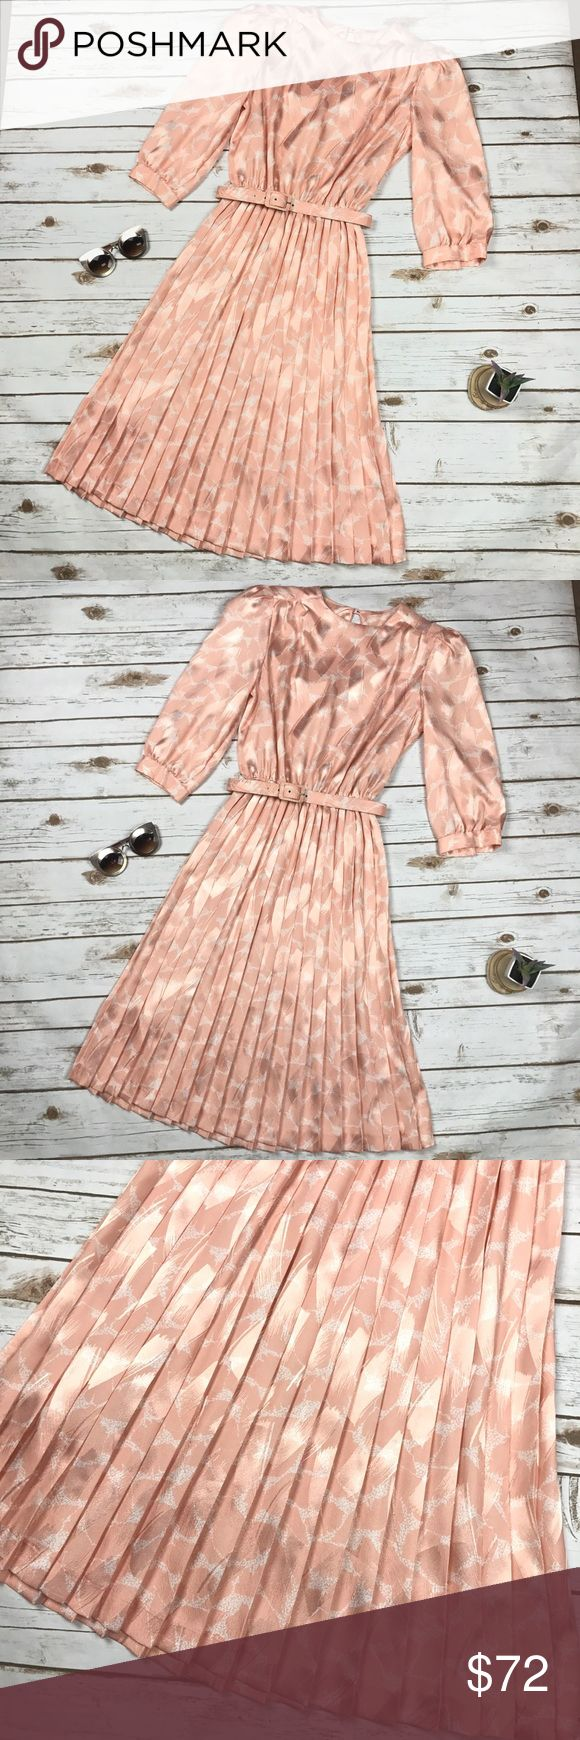 """Vintage Light Pink Belted Pleated Pinup Midi Dress VTG Alexis Petites Light Pink Belted Pleated Pinup Midi A-line Tea Dress 10. Excellent condition, no flaws or signs of wear. Elastic waist with detachable belt, shoulder pads, permanent pleats and 3/4 sleeves. 100% polyester, Made in the USA. Bust- 40"""", Waist- 25""""-30"""", Hip- free, Length- 43"""". Alexis Petites Dresses Midi"""